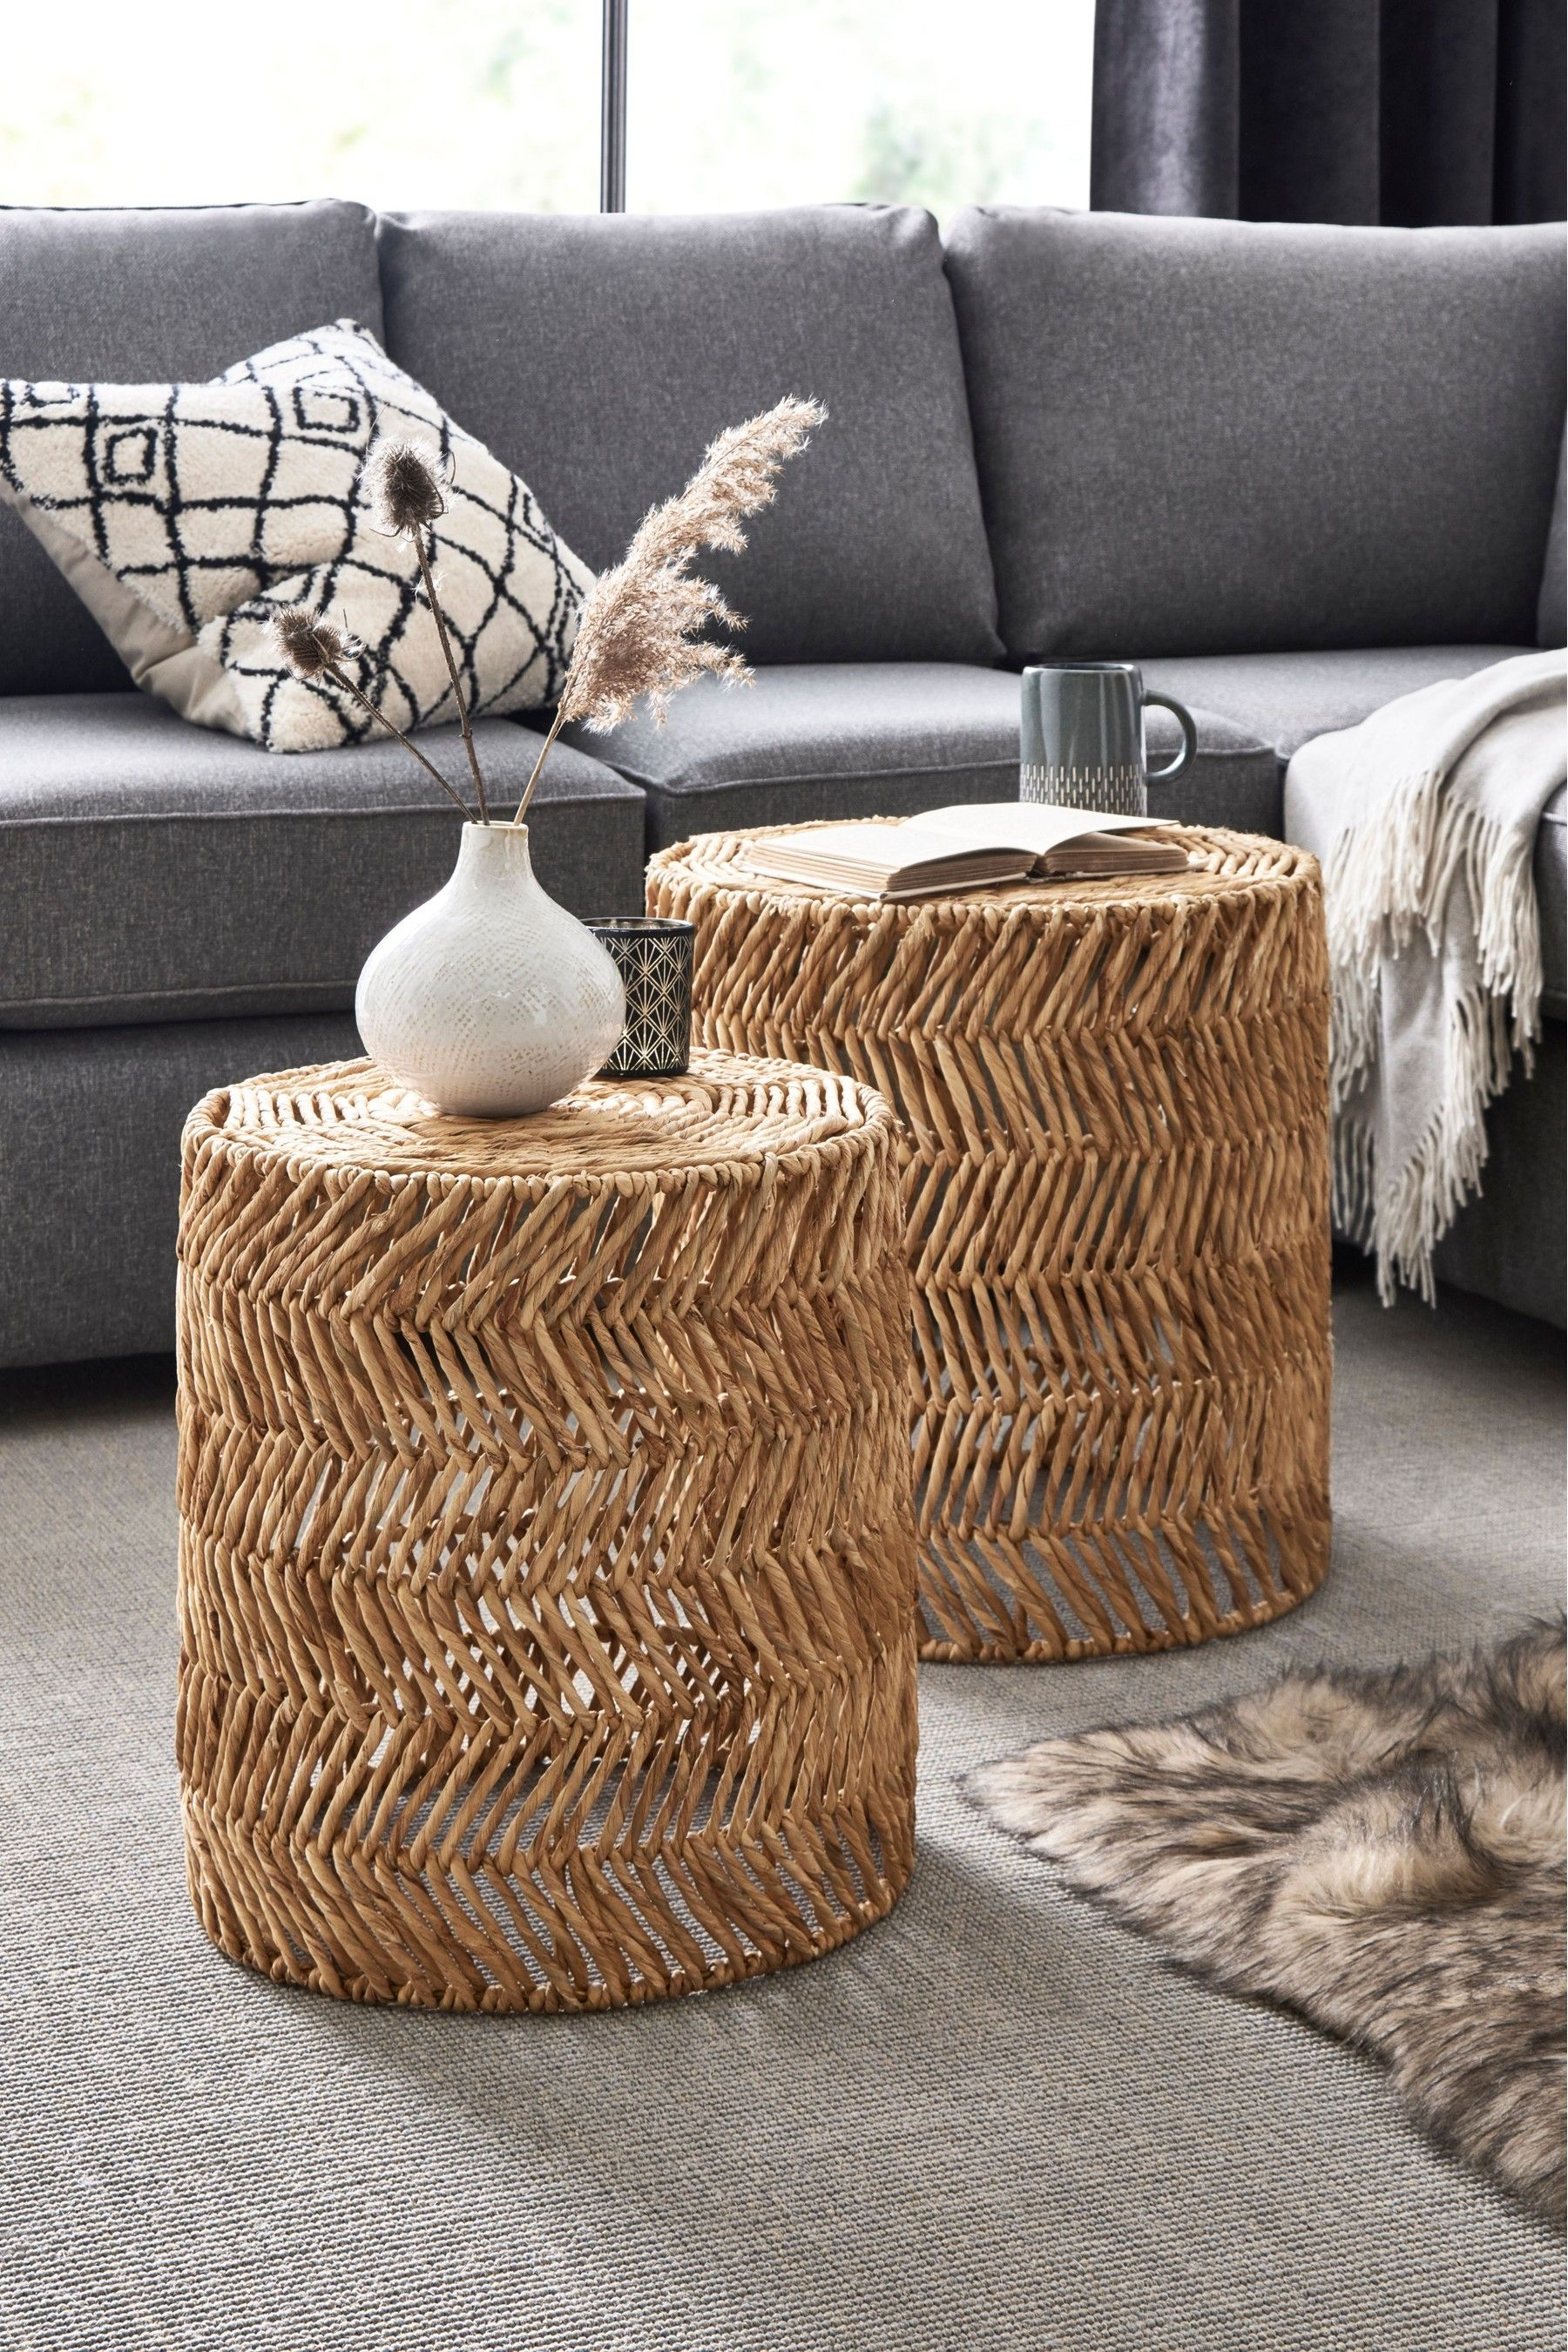 Next Woven Nest Of Tables - Natural | Coffee table next ...